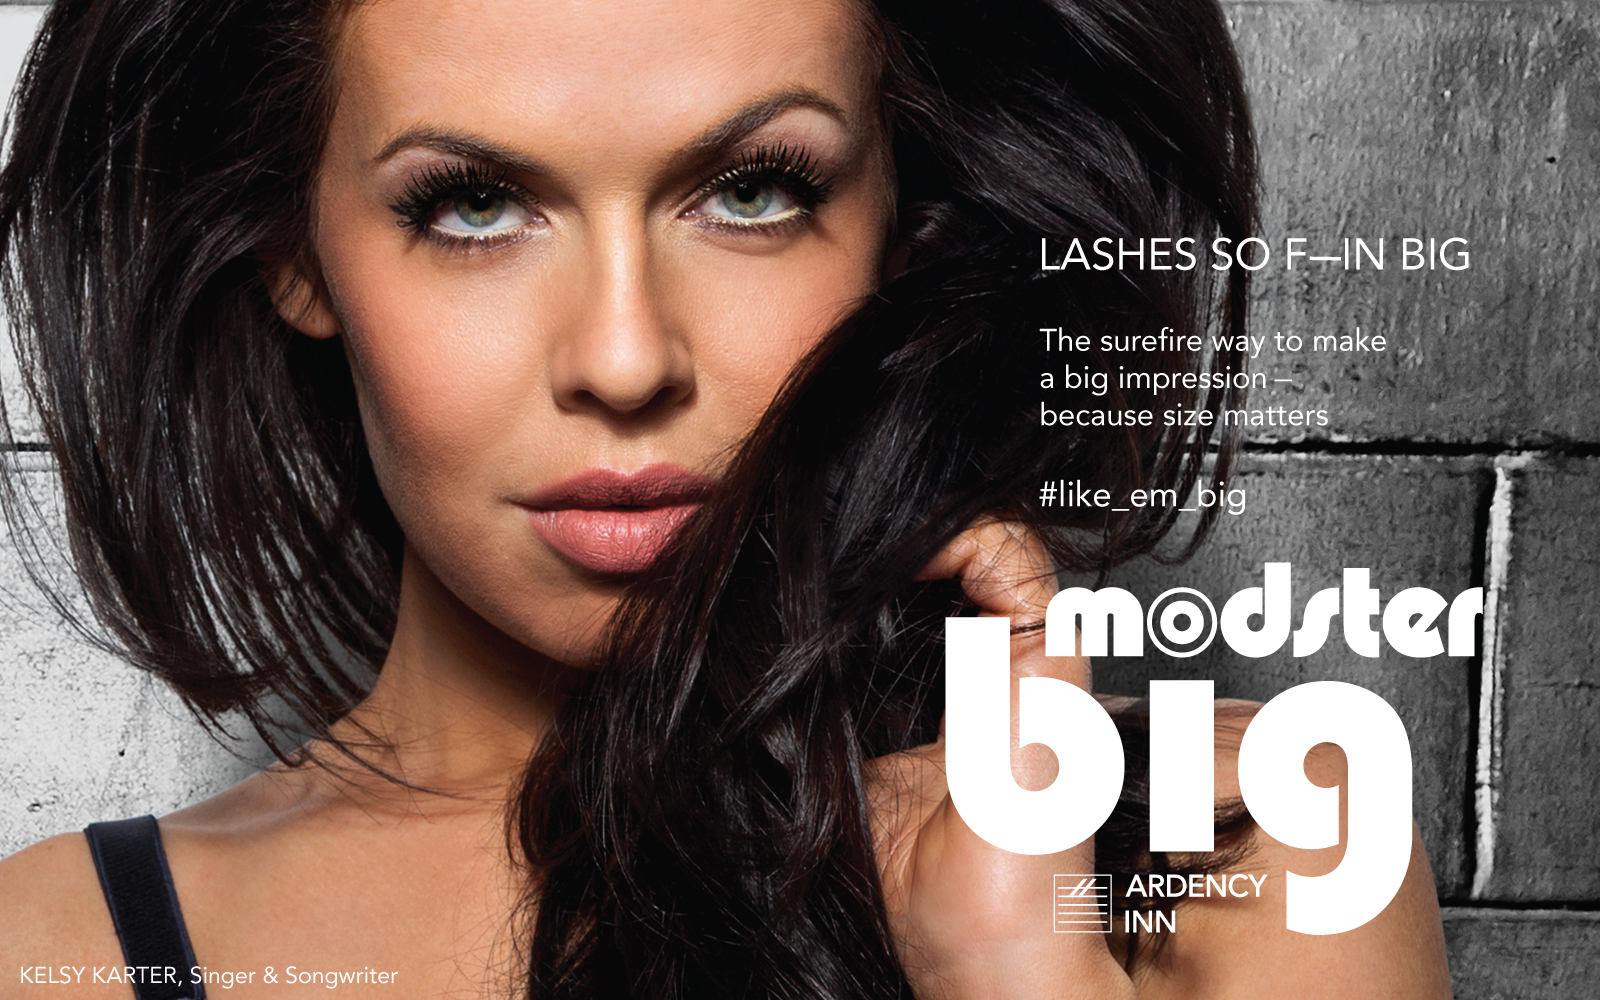 Ardency Inn_MODSTER BIG_ mascara